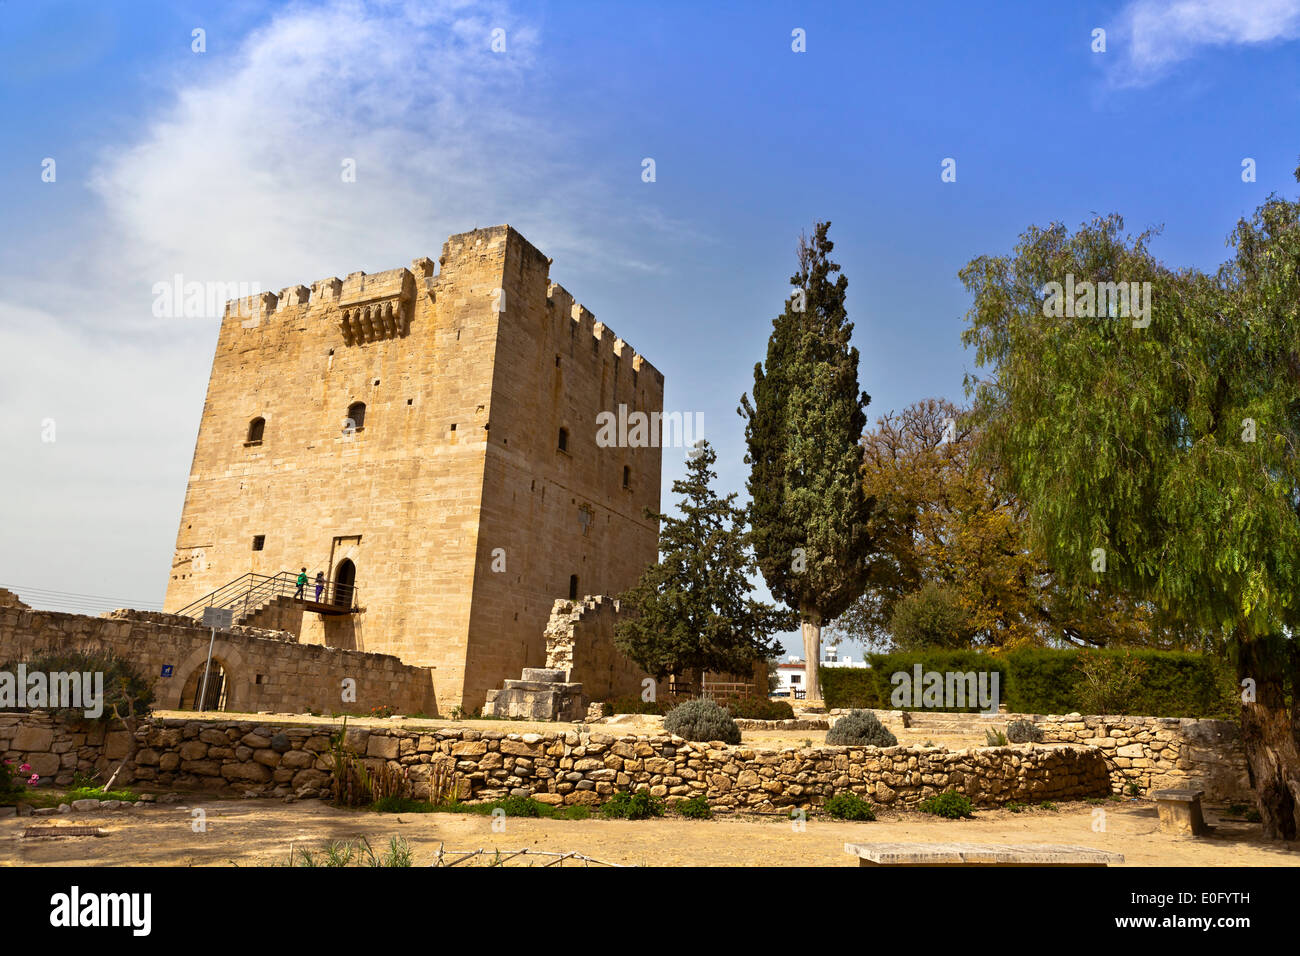 The medieval castle of Kolossi near Limassol in Cyprus. - Stock Image